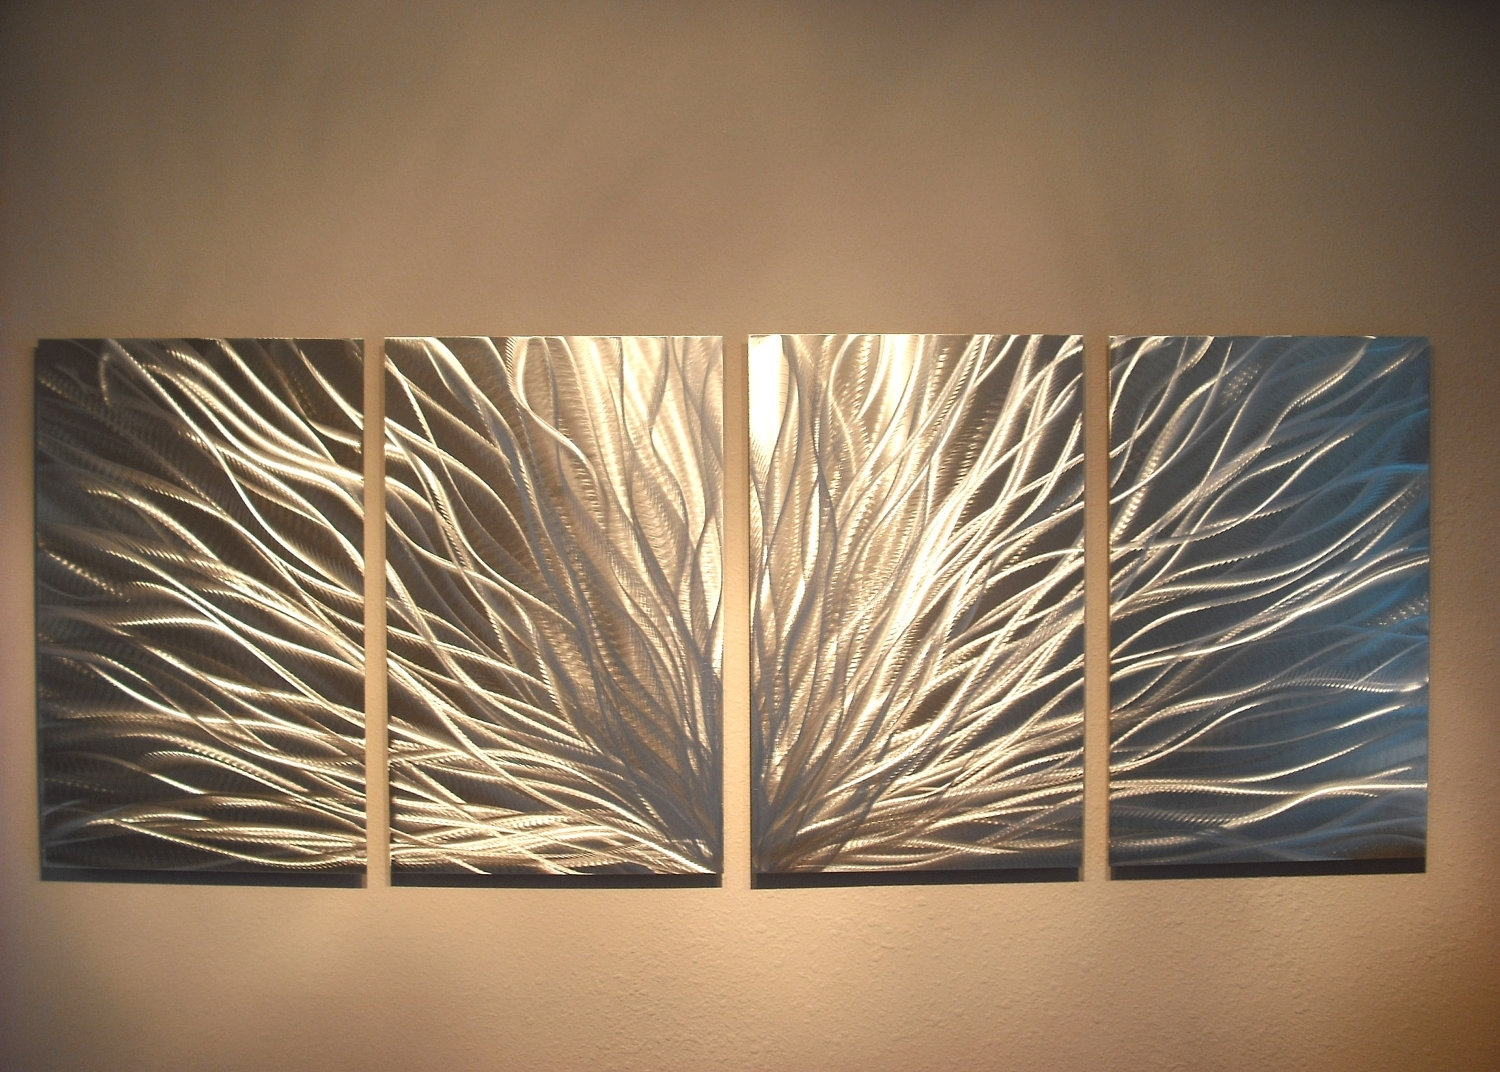 Radiance – Abstract Metal Wall Art Contemporary Modern Decor In Best And Newest Long Abstract Wall Art (Gallery 4 of 20)